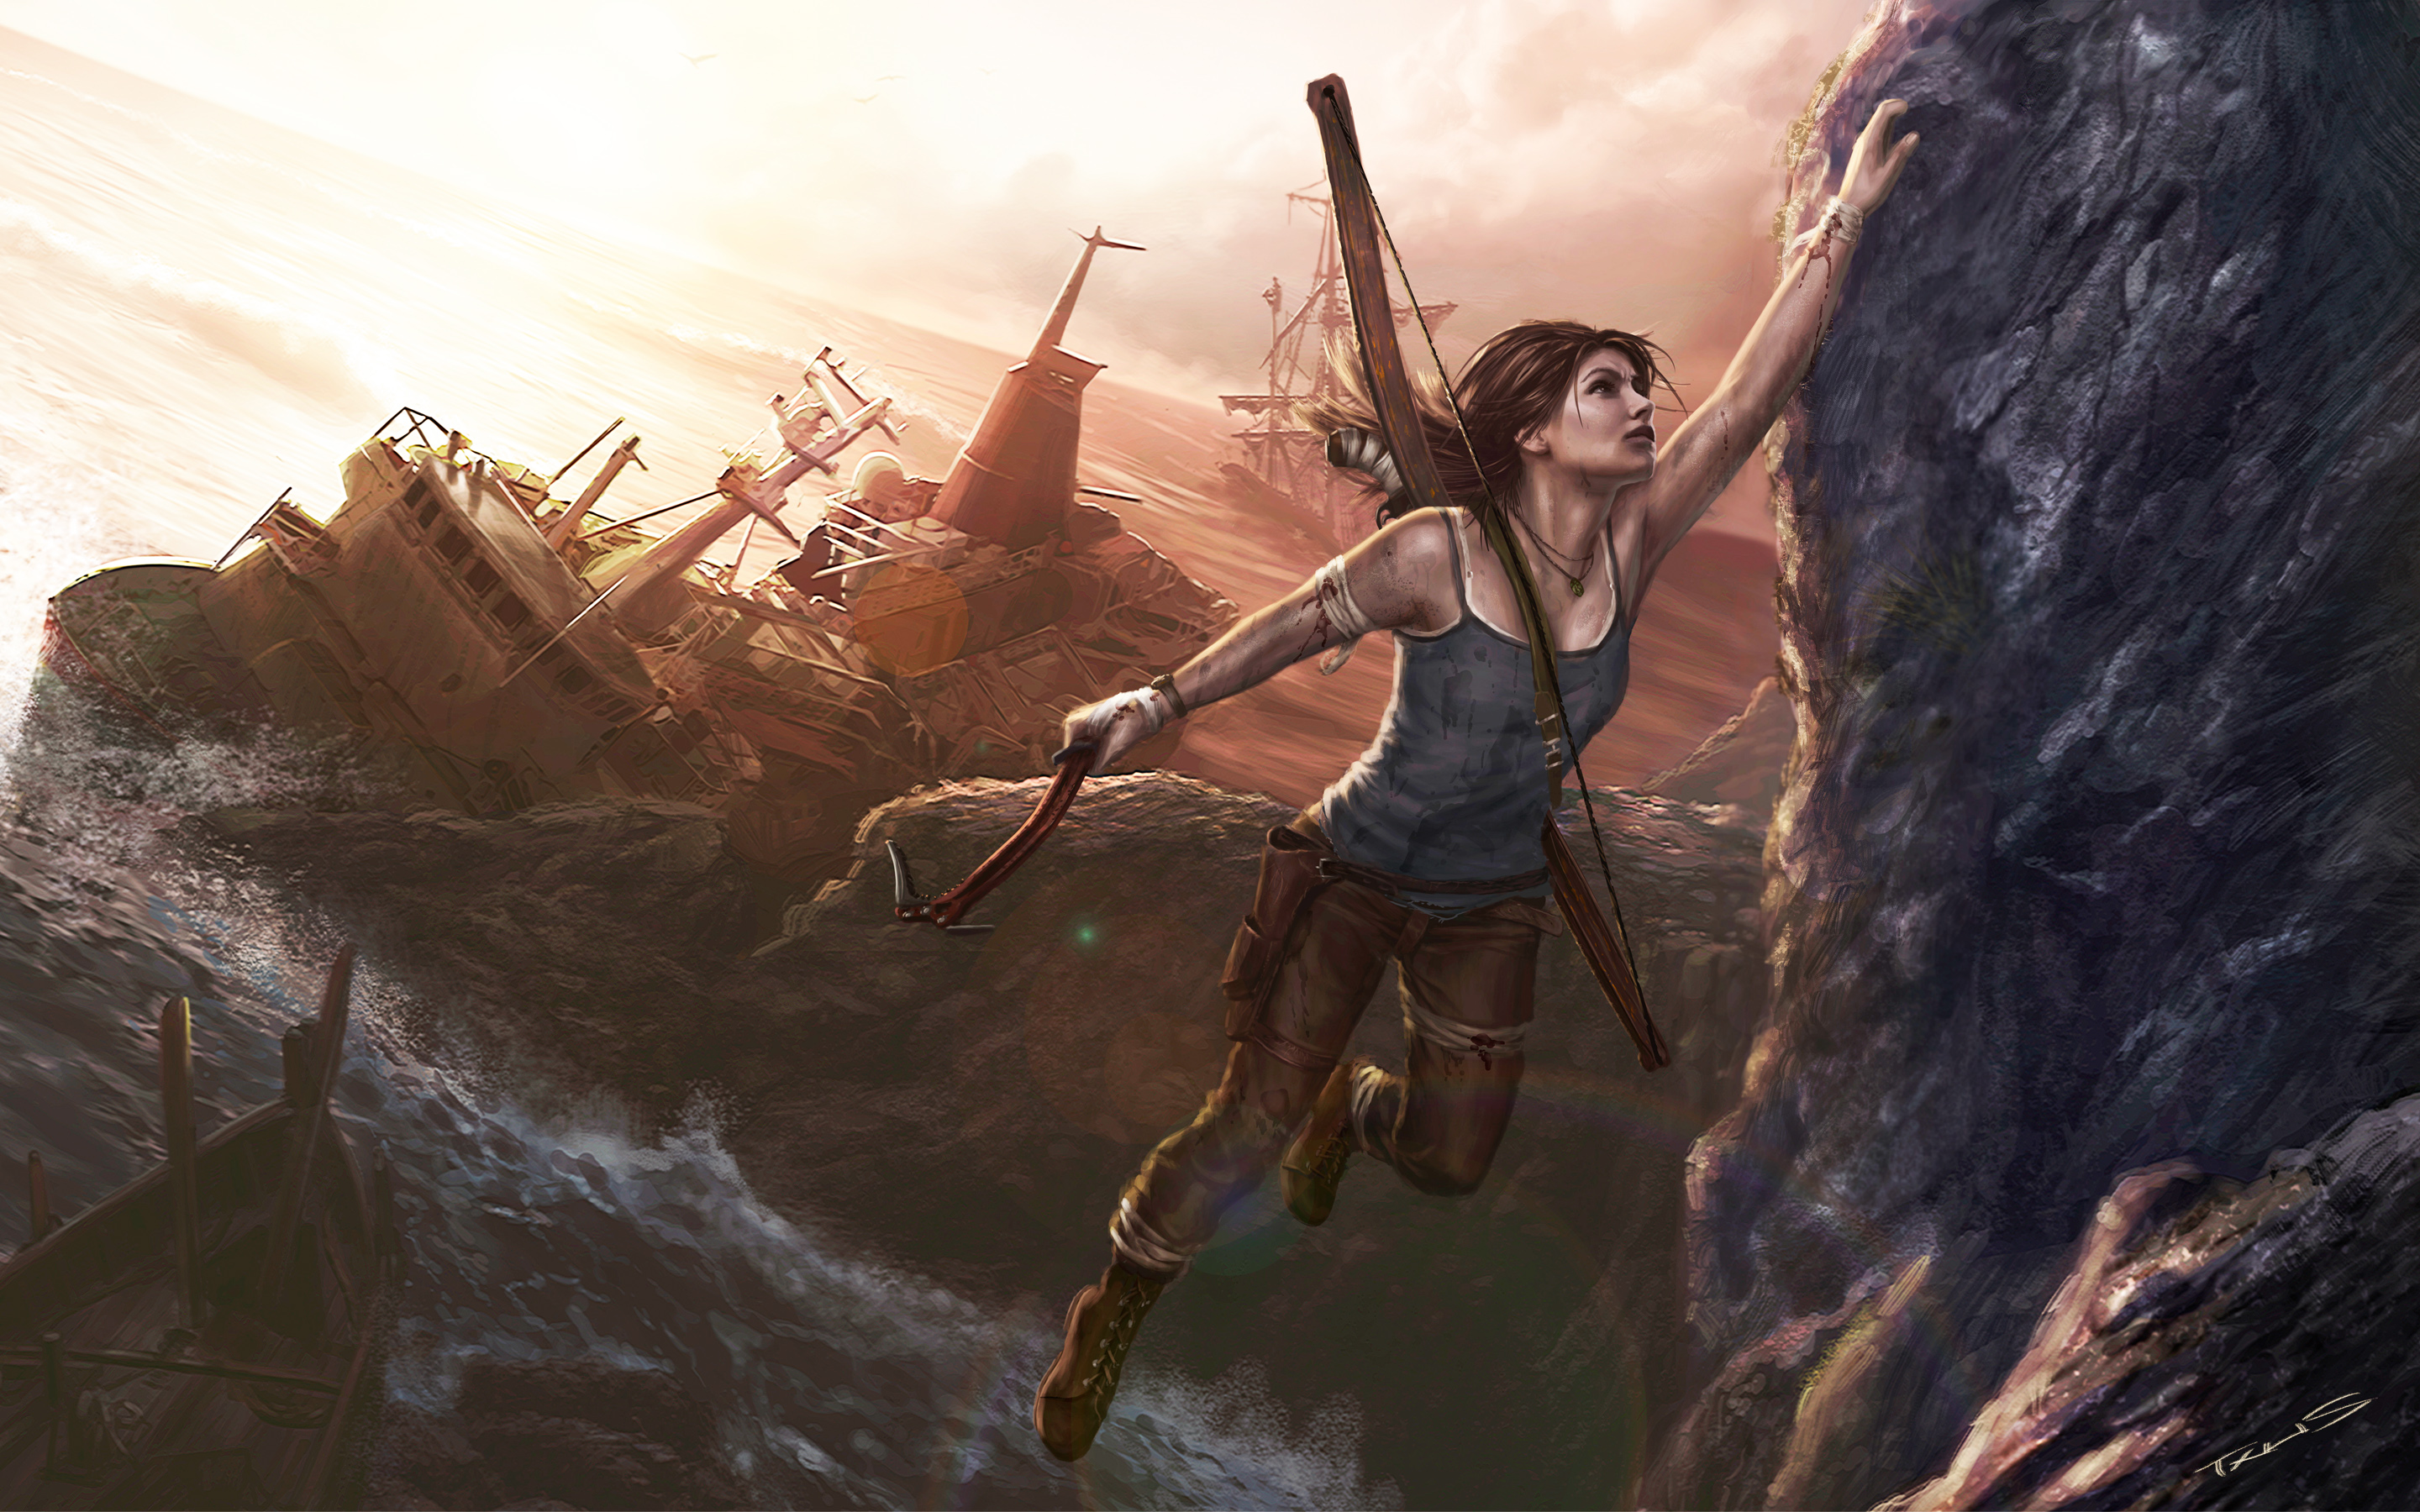 Lara Croft Art 468.61 Kb